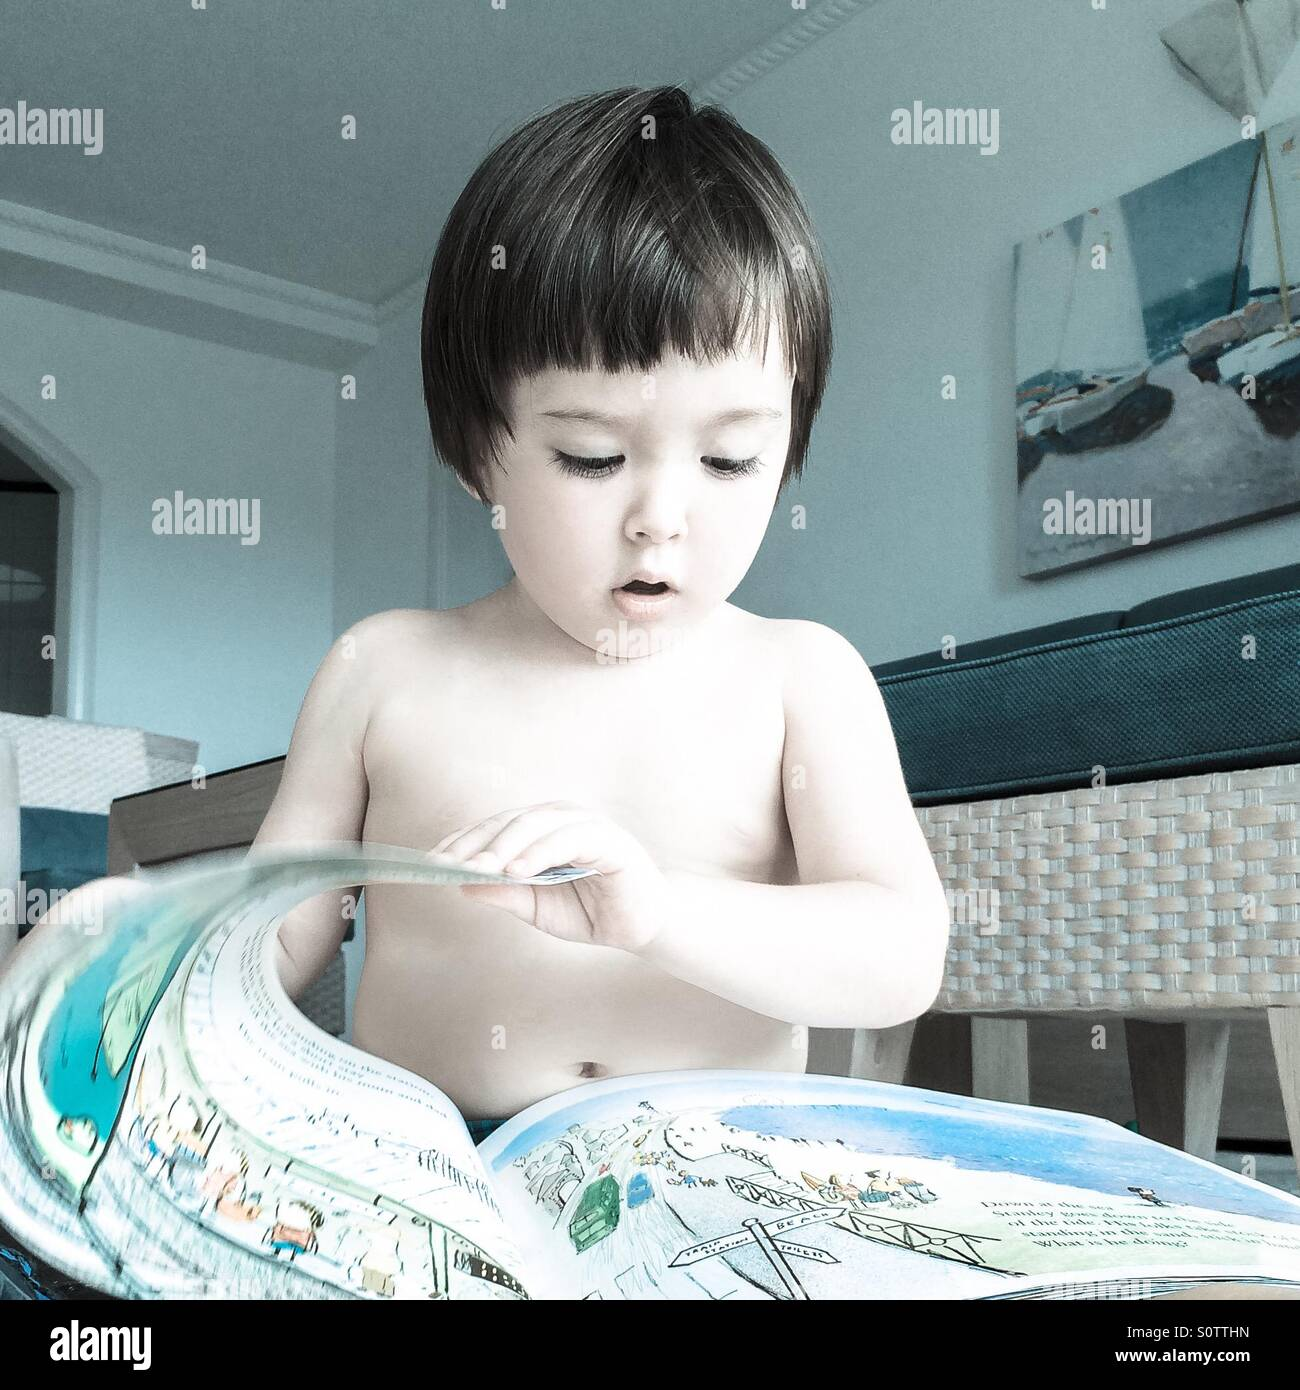 A little boy reading a book - Stock Image